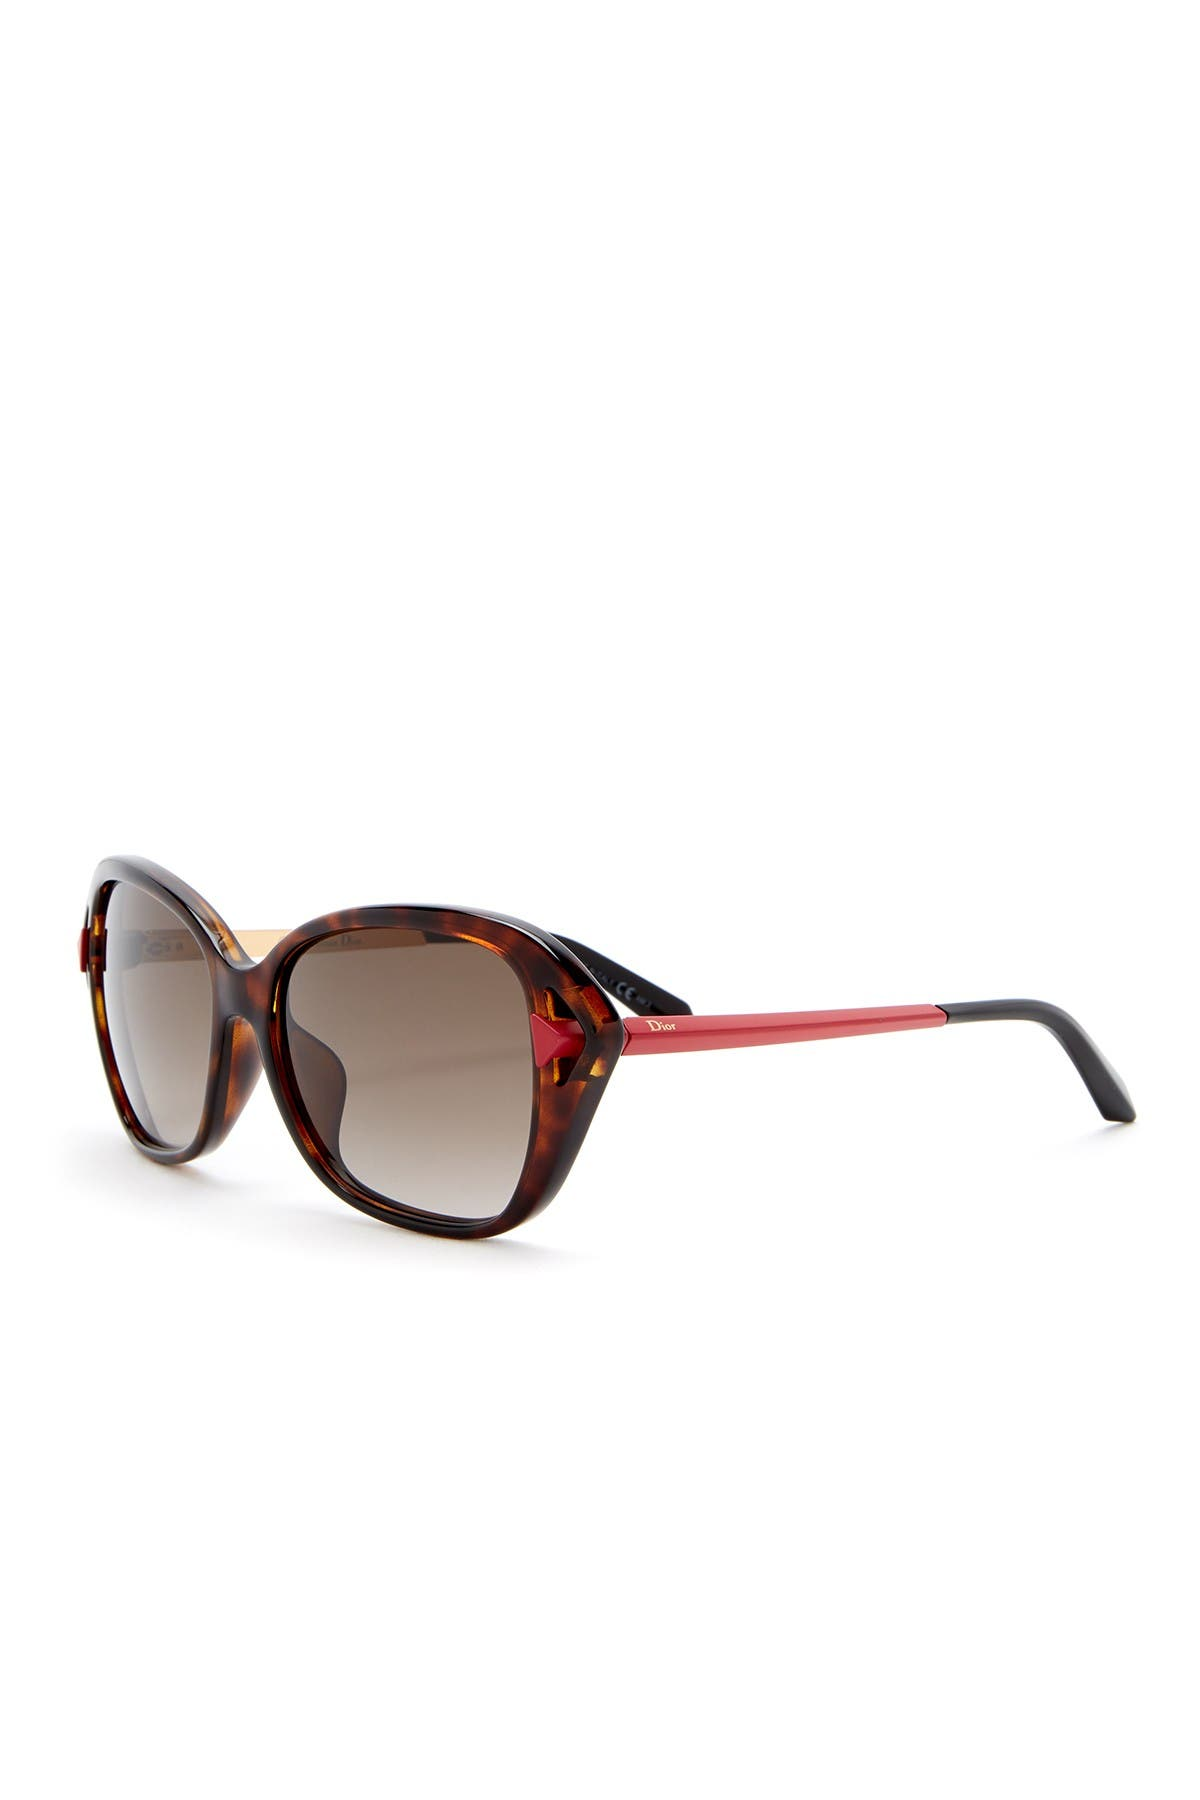 Image of CHRISTIAN DIOR 56mm Oversized Sunglasses